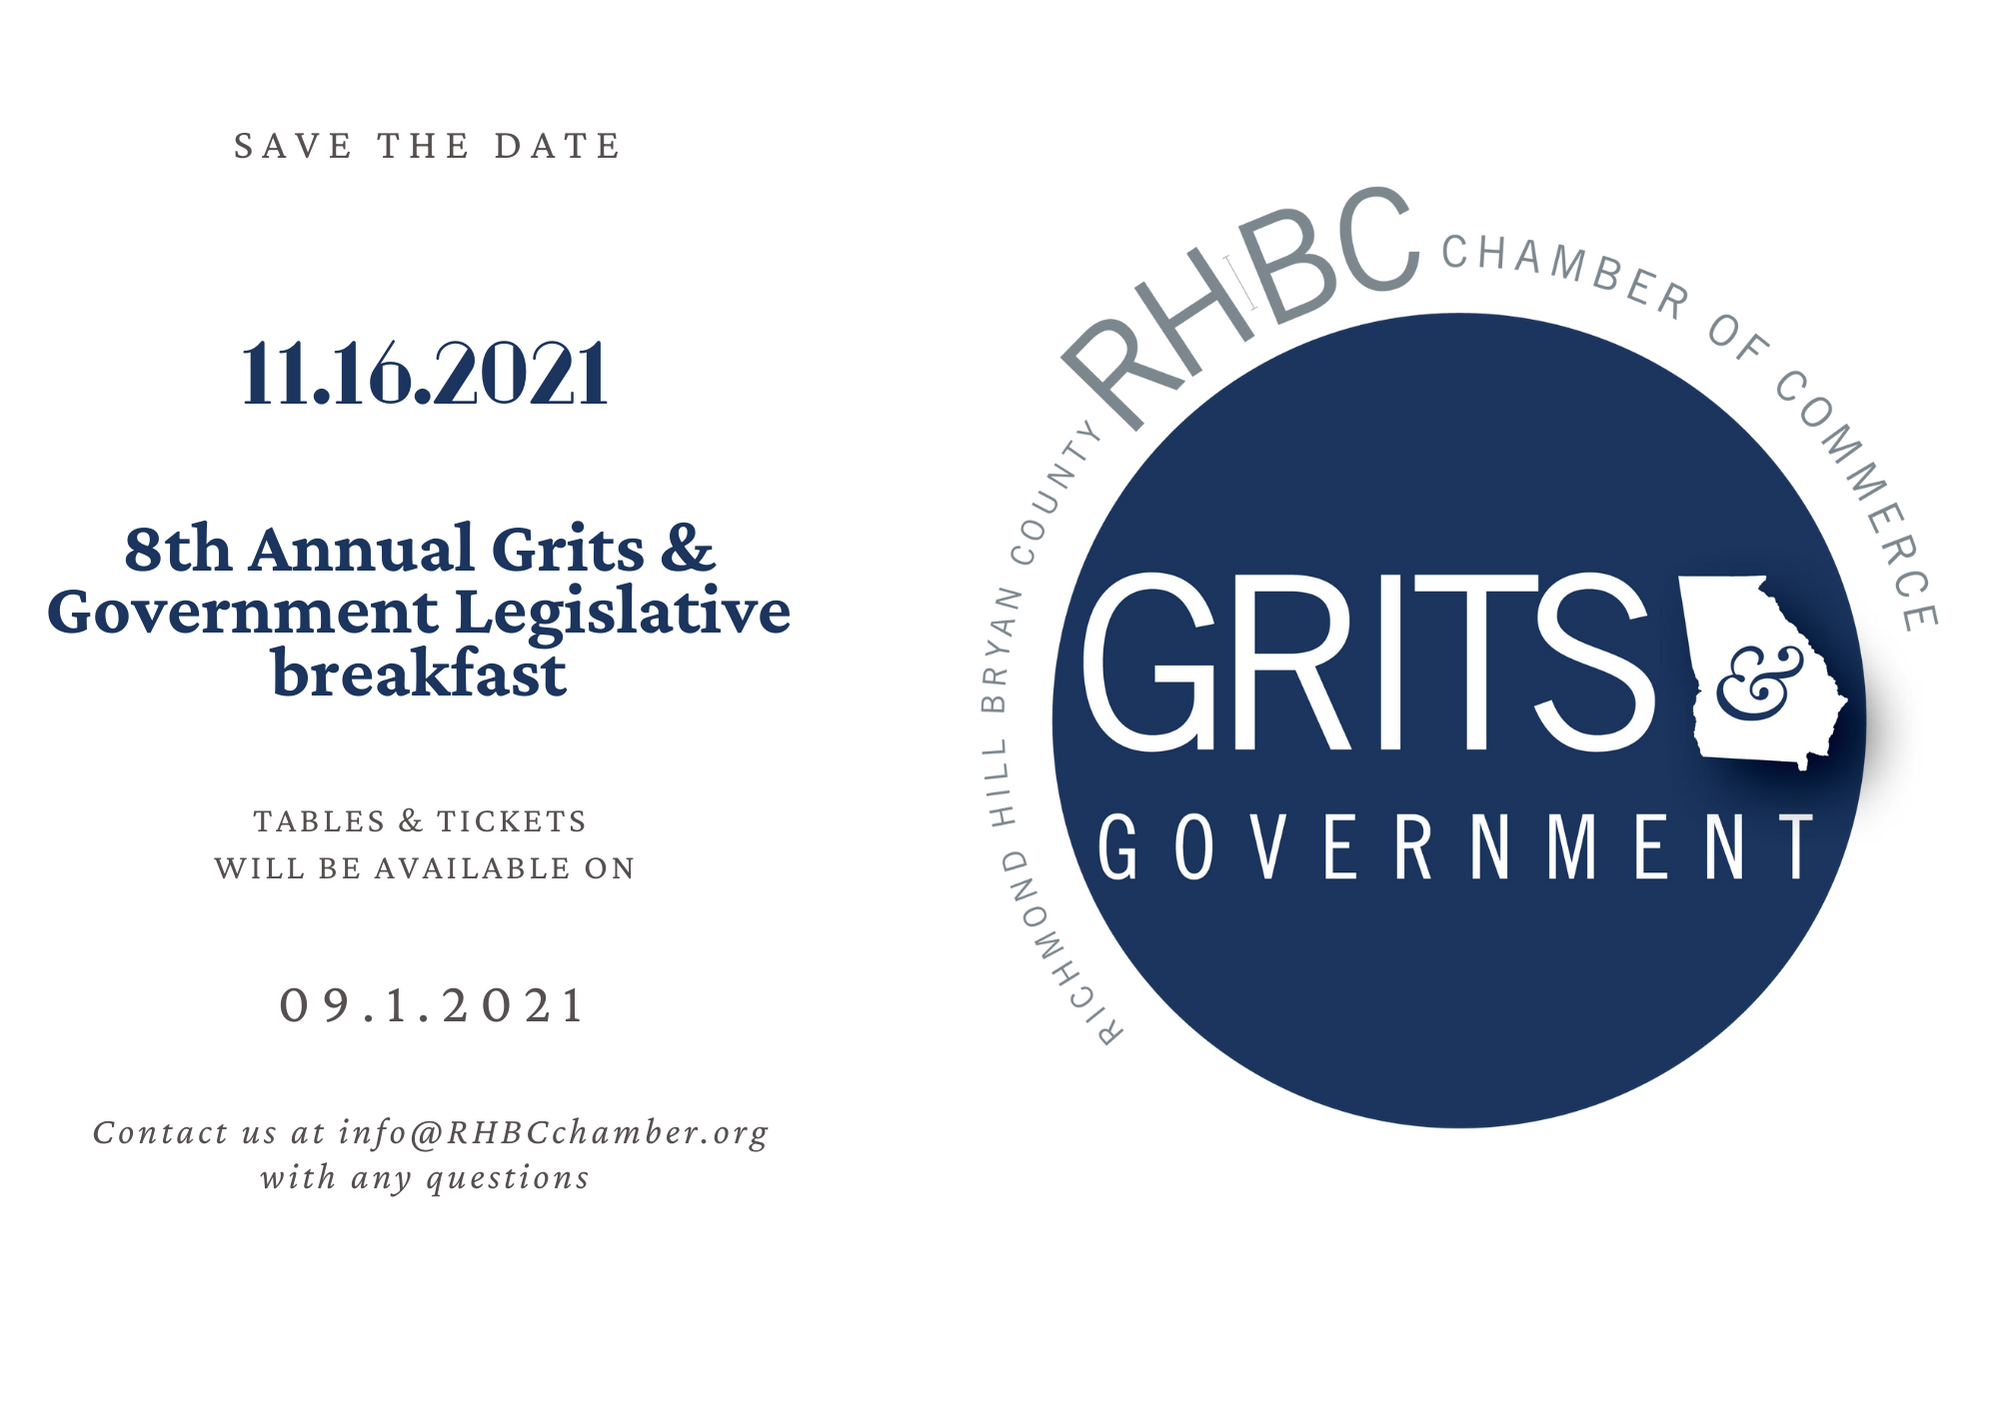 2021-Grits-and-Government-Save-the-Date.png